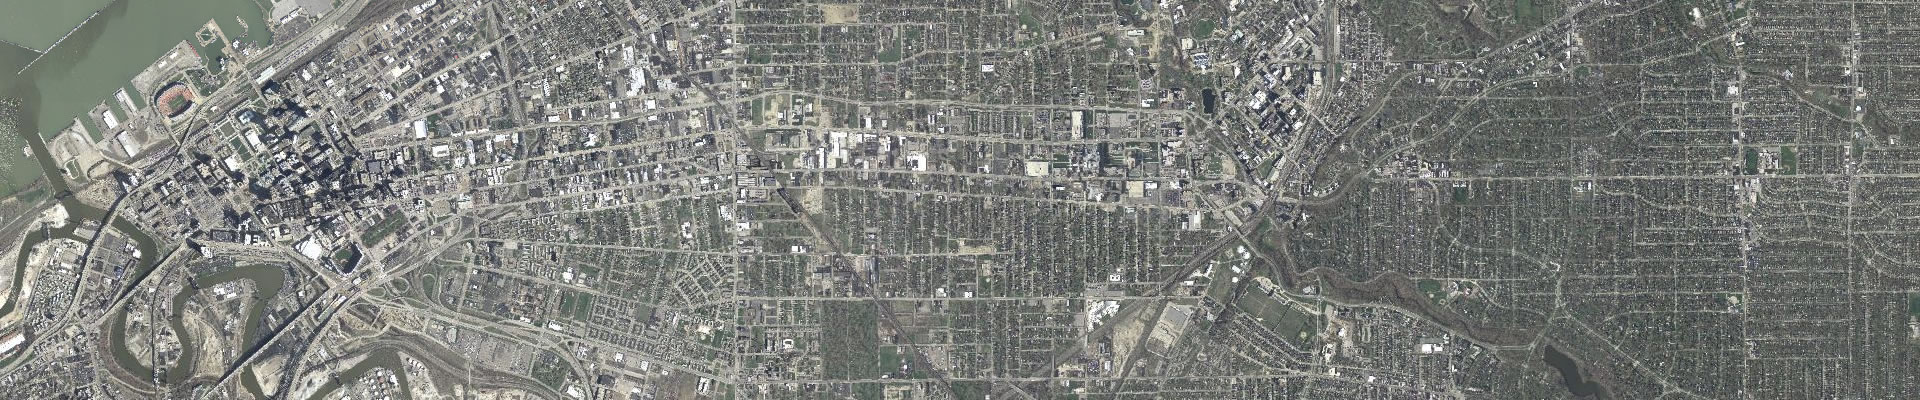 aerial photo of Cuyahoga County